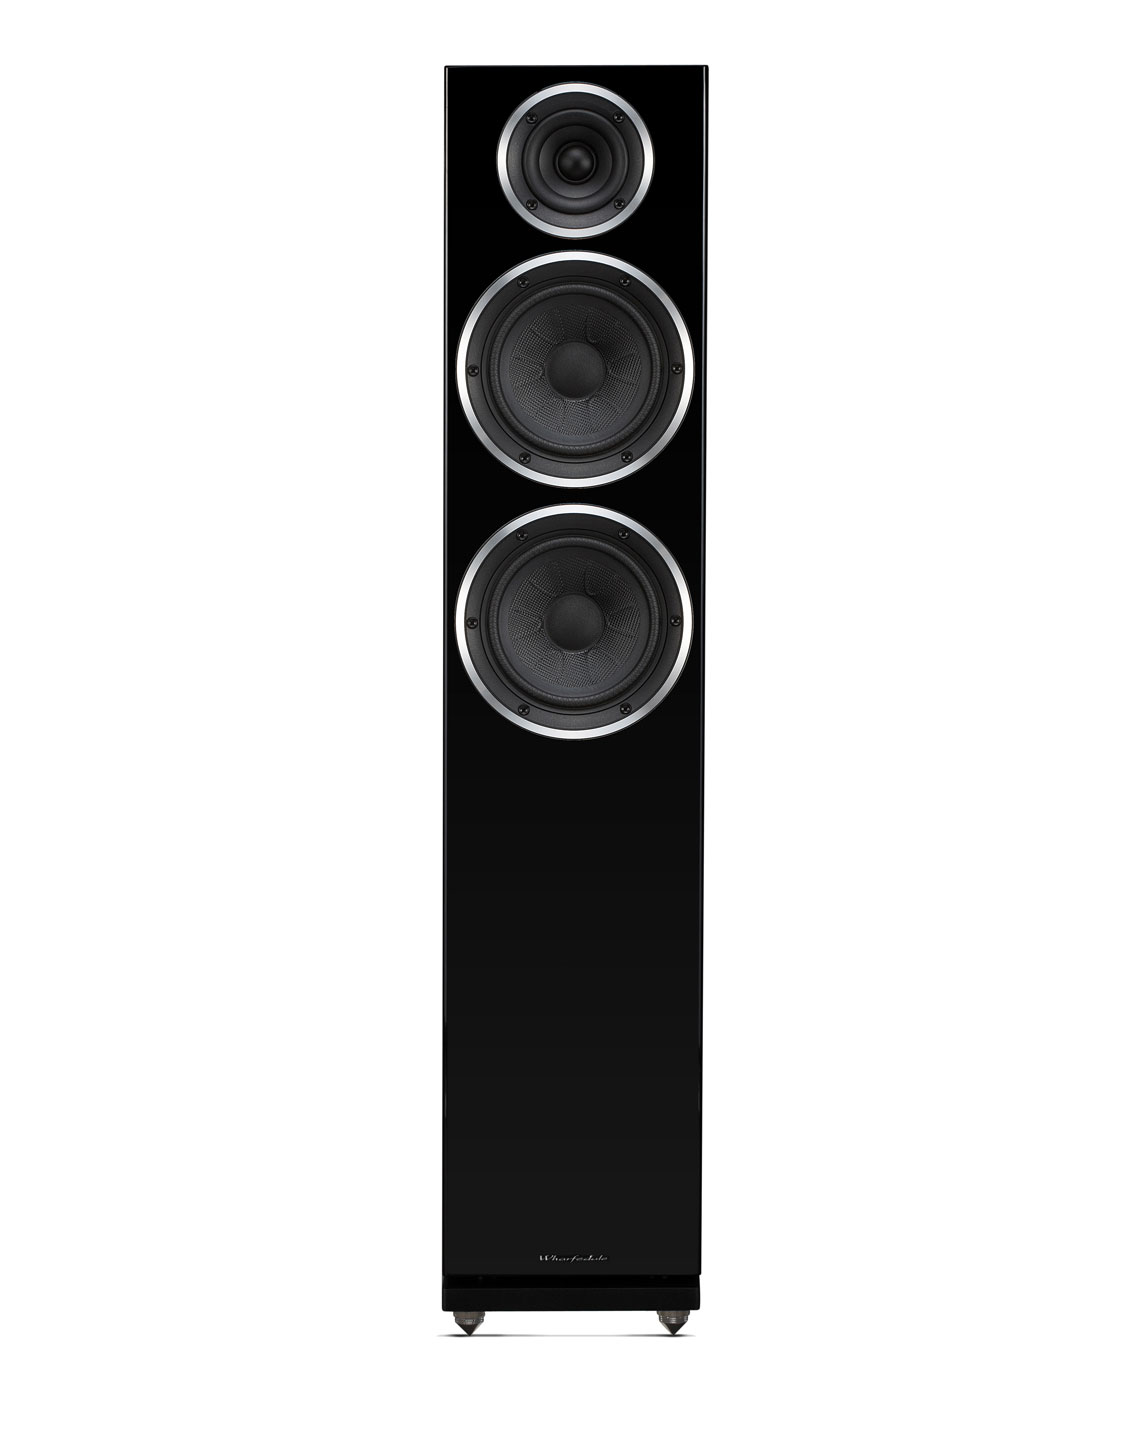 https://www.wharfedale.co.uk/wp-content/uploads/wp-image-slider-with-lightbox/D230-Rosewood-front-view5c1390b48561e.jpg